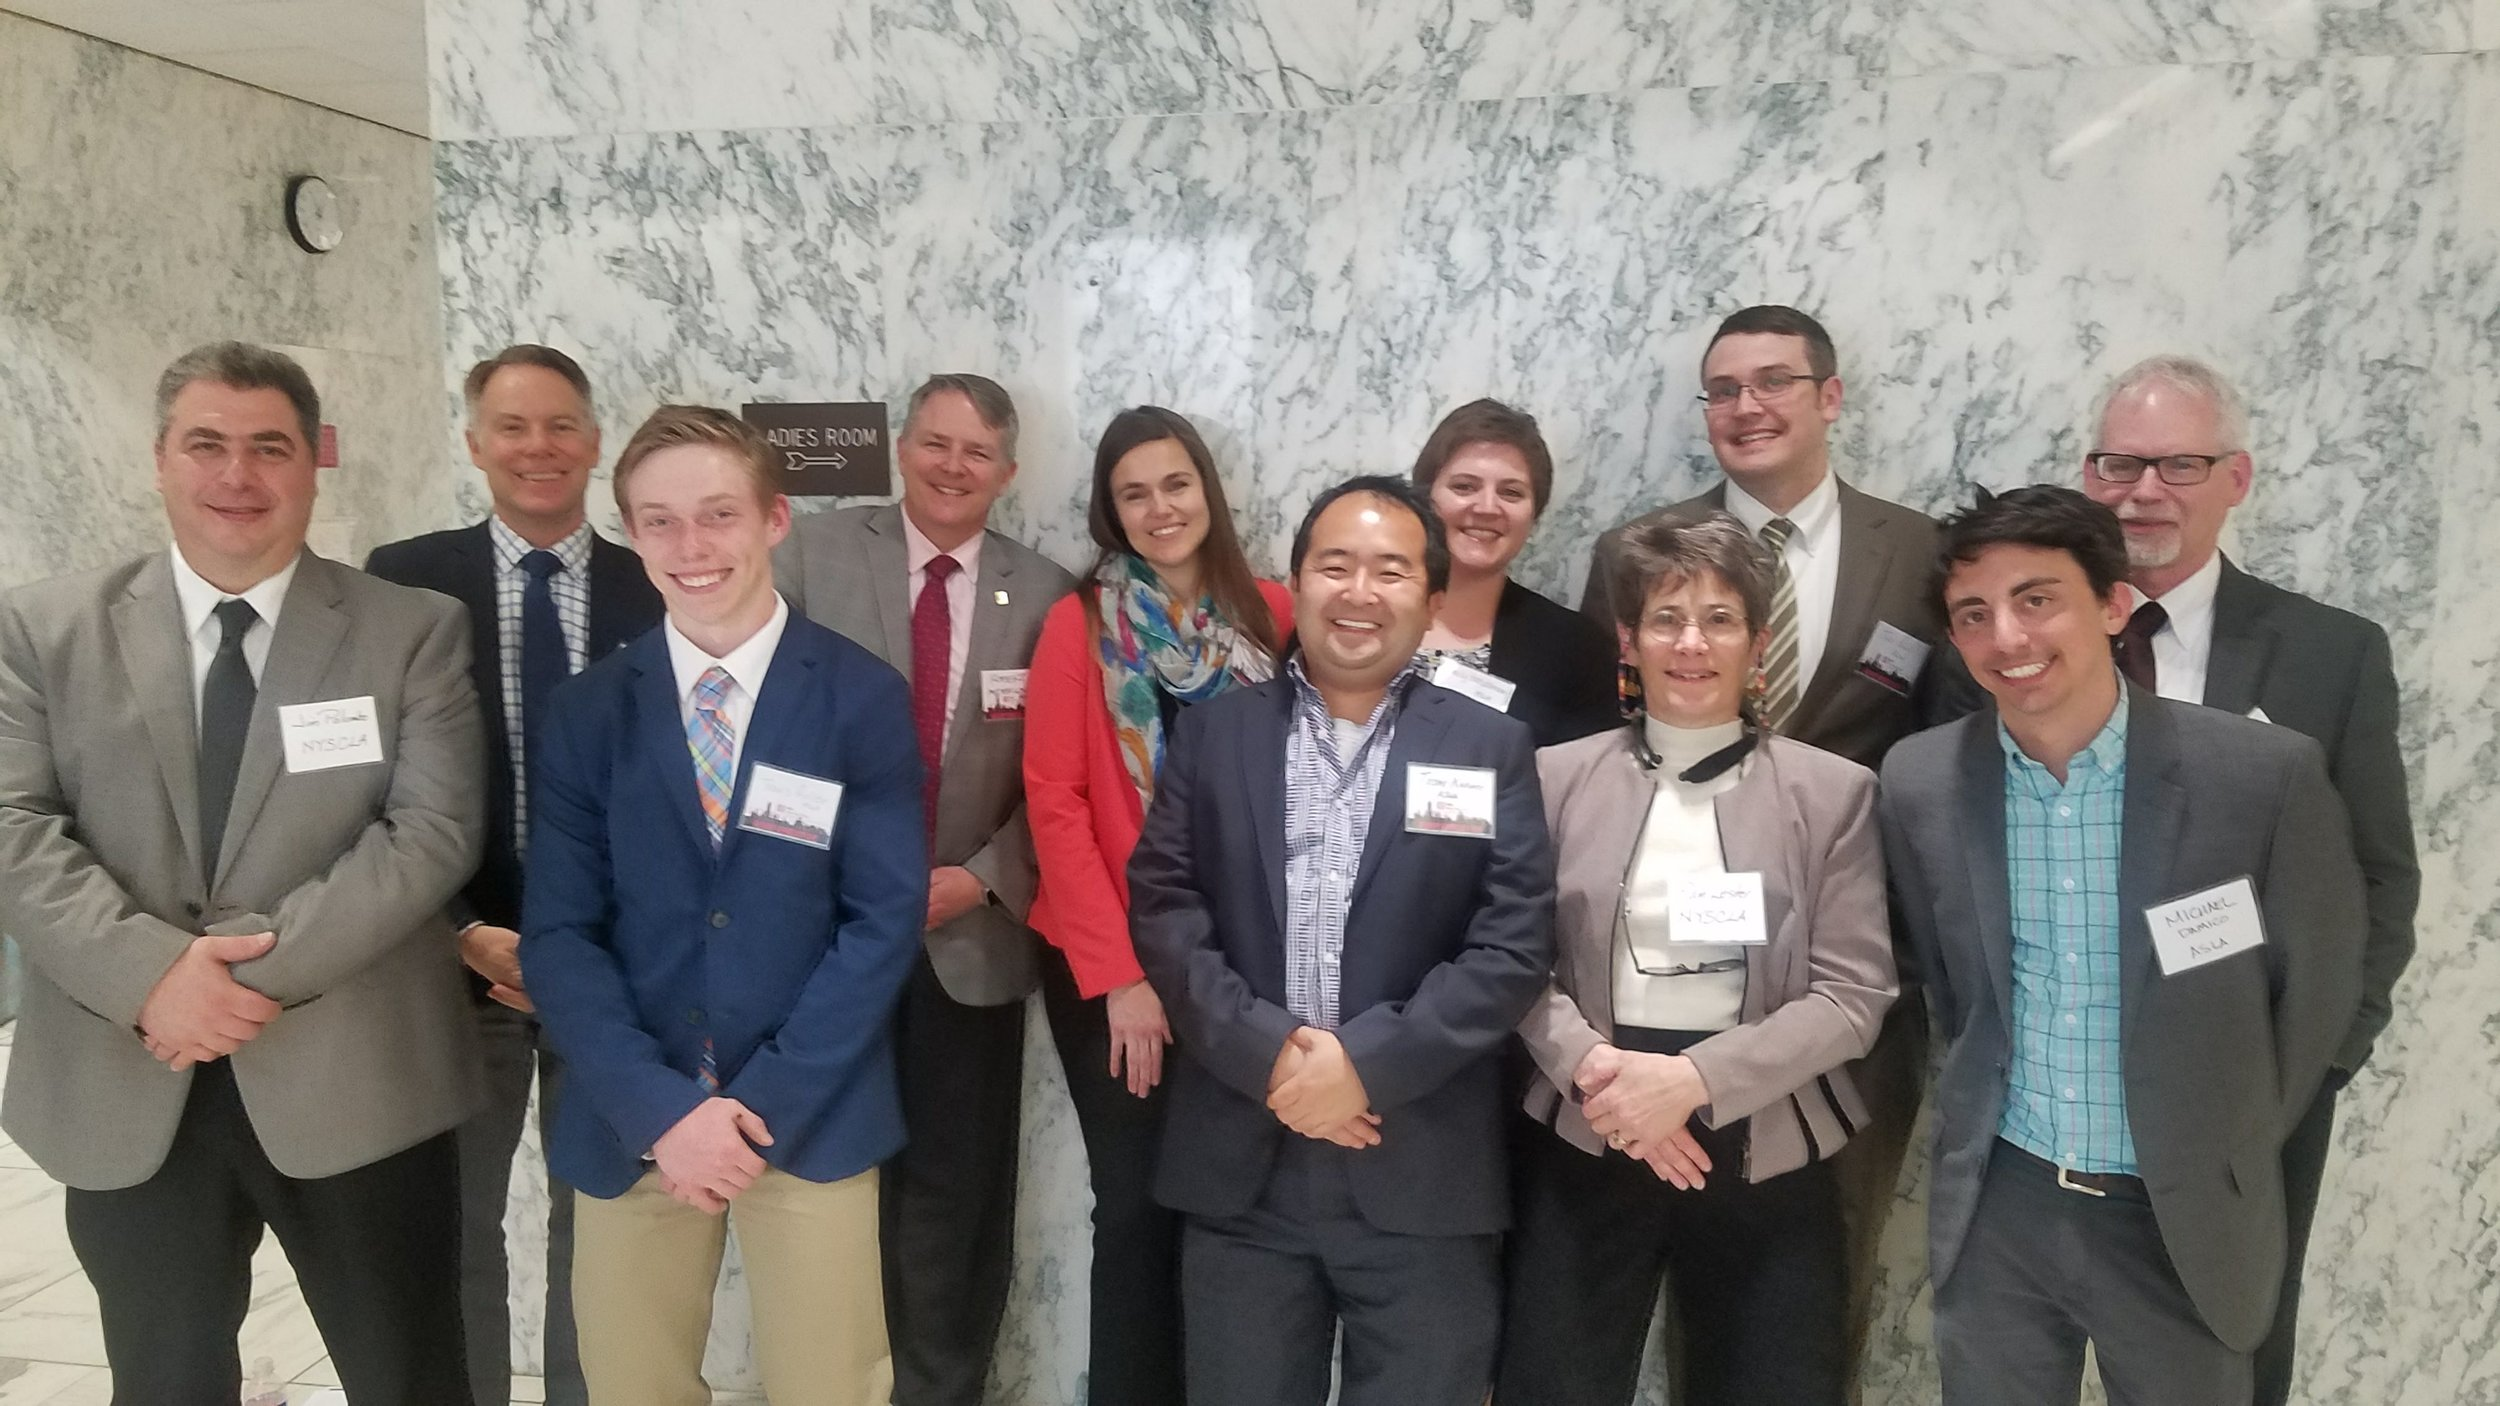 State Lobby Day 2018